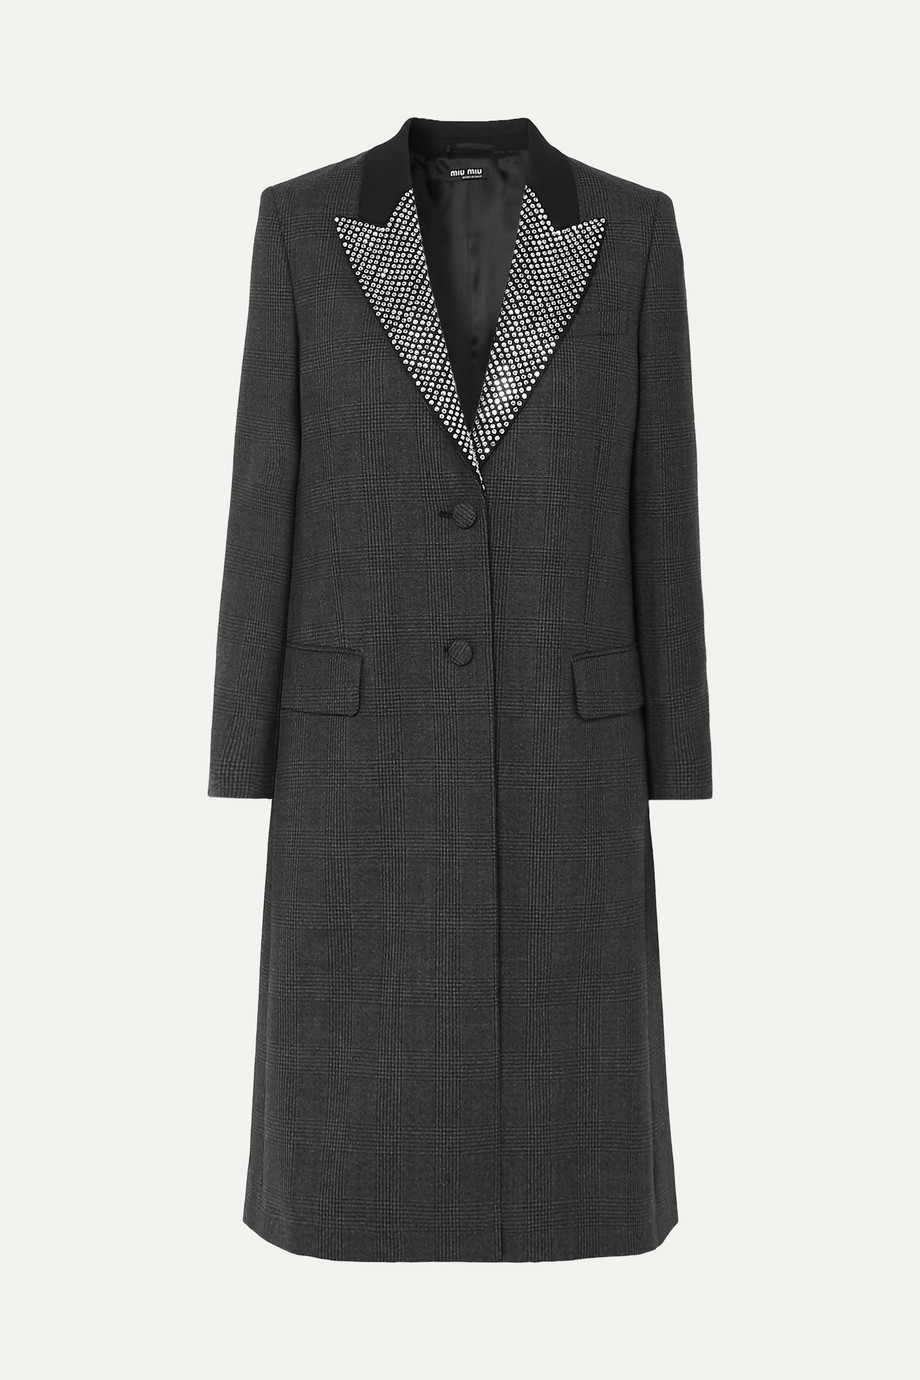 Miu Miu Crystal-embellished Prince of Wales checked wool coat